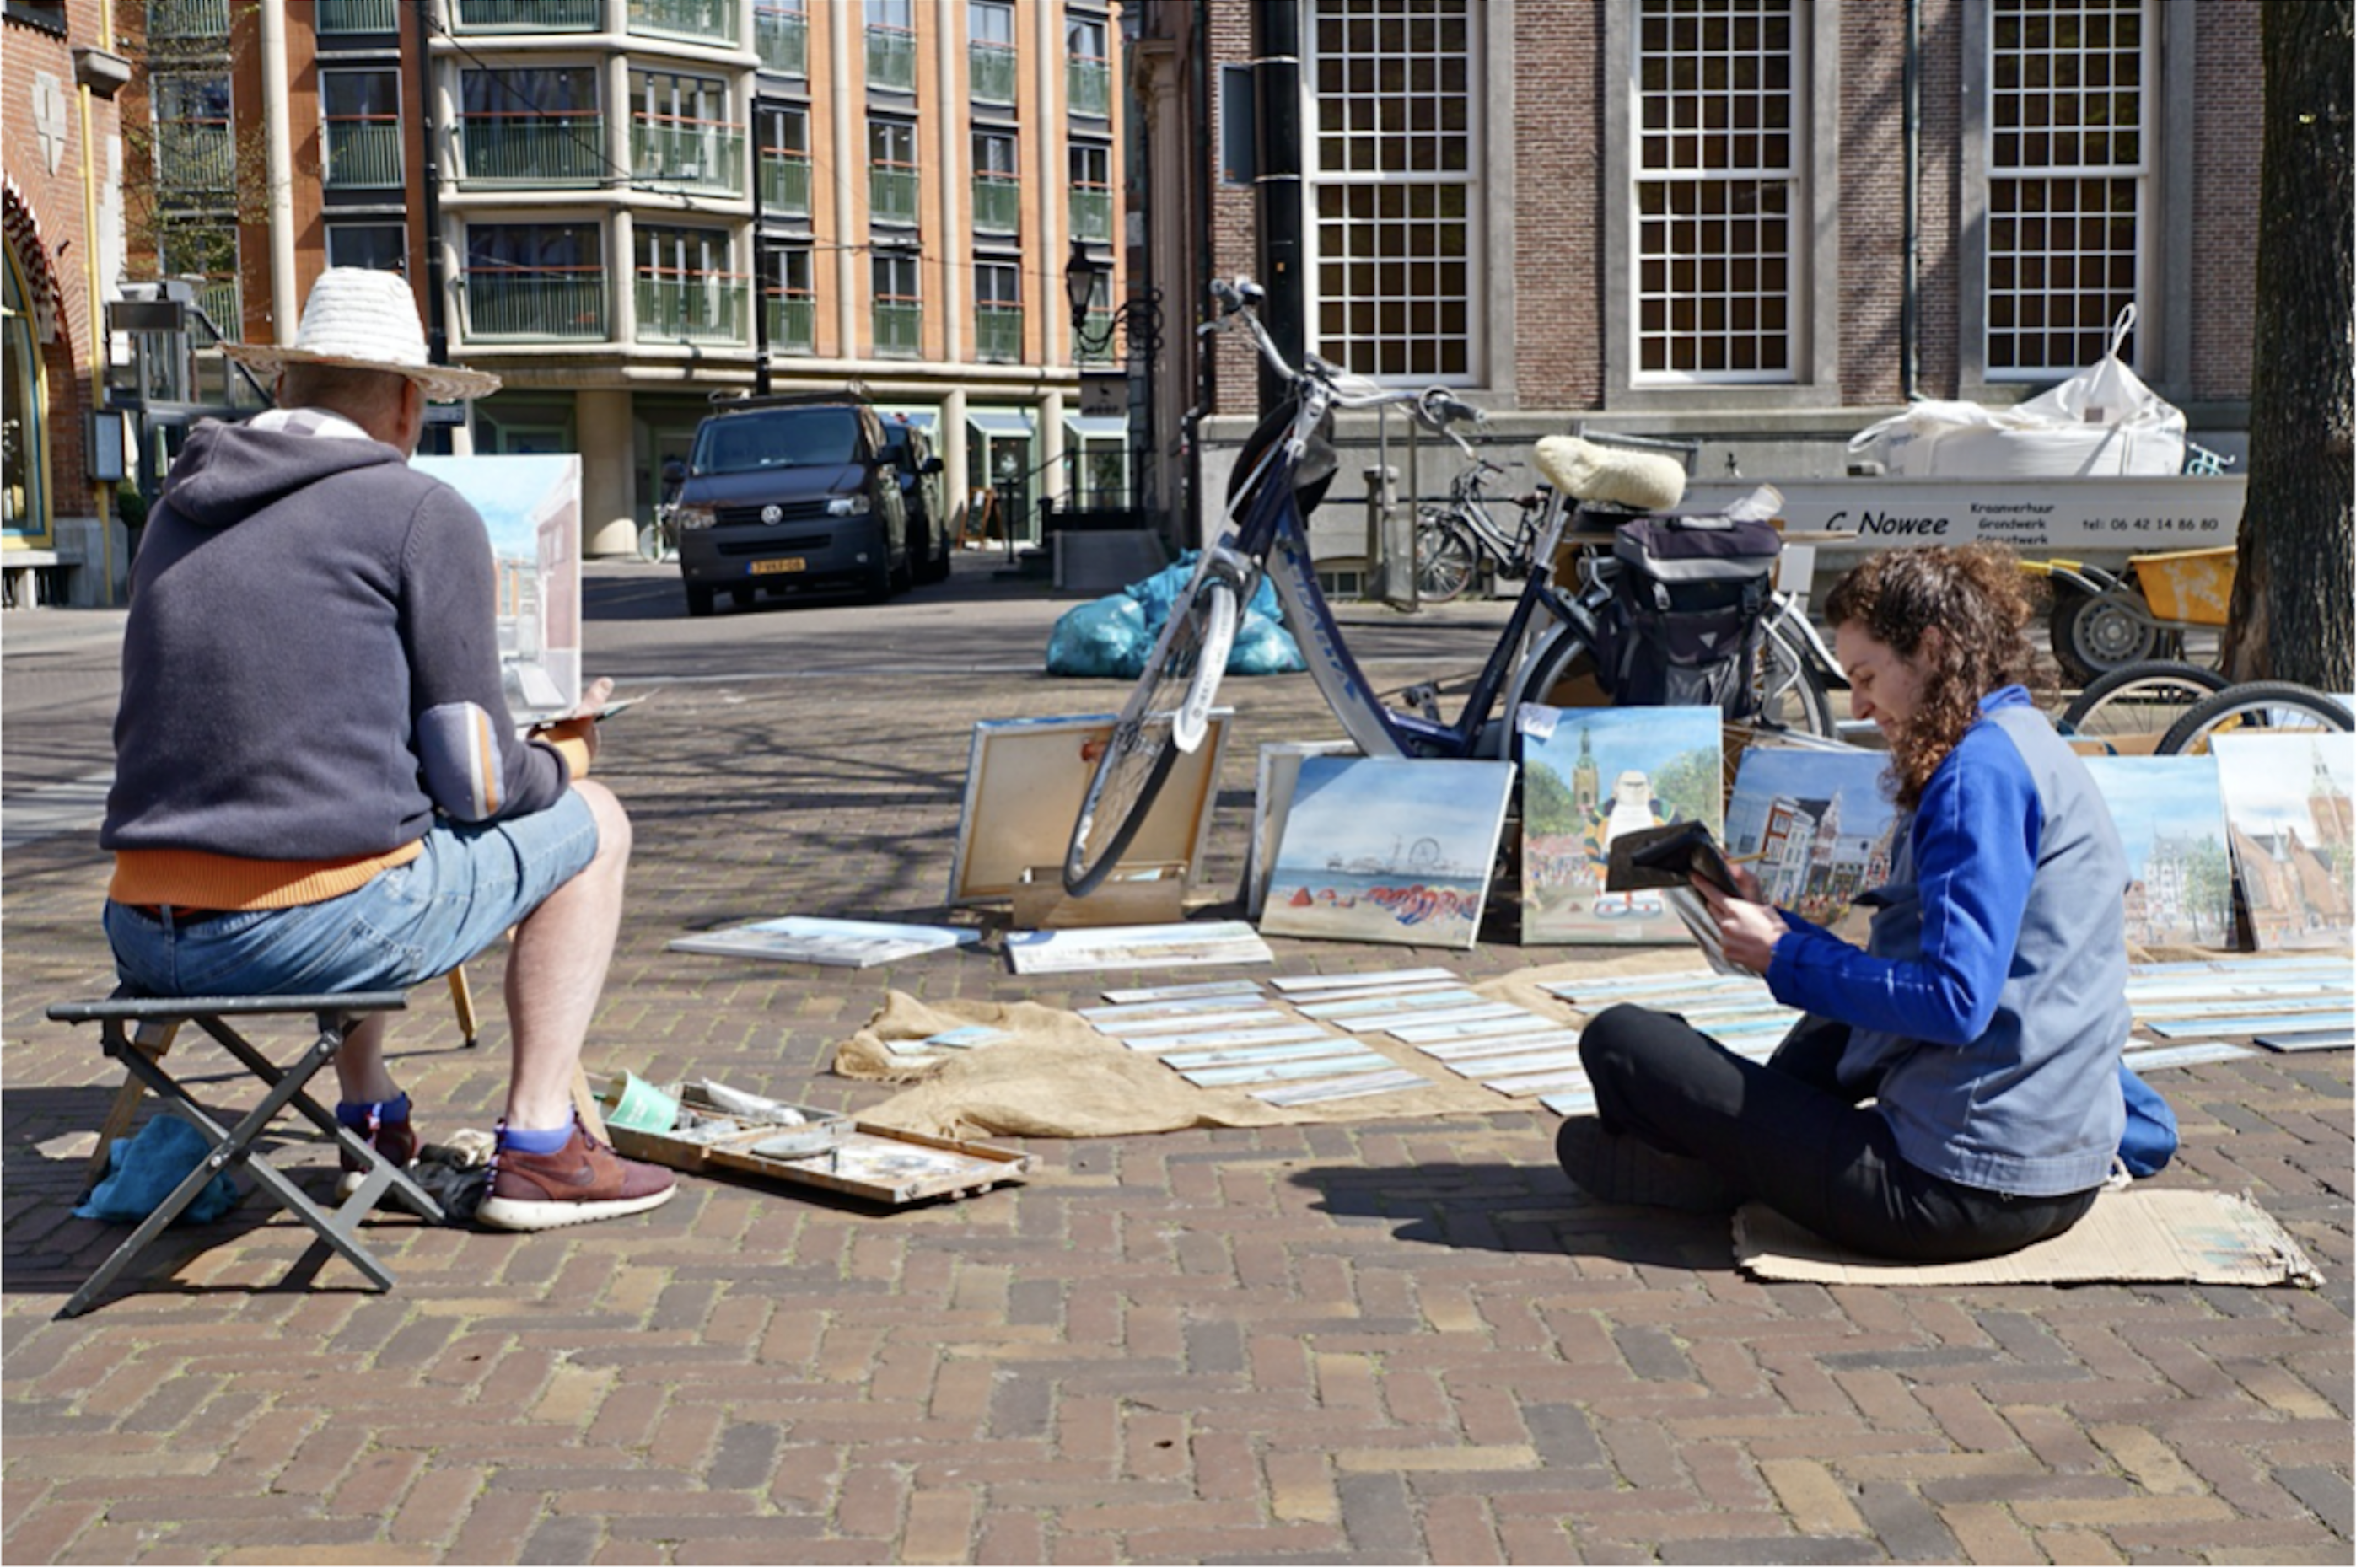 A man passes by and photographs me drawing the painter and the painter painting.